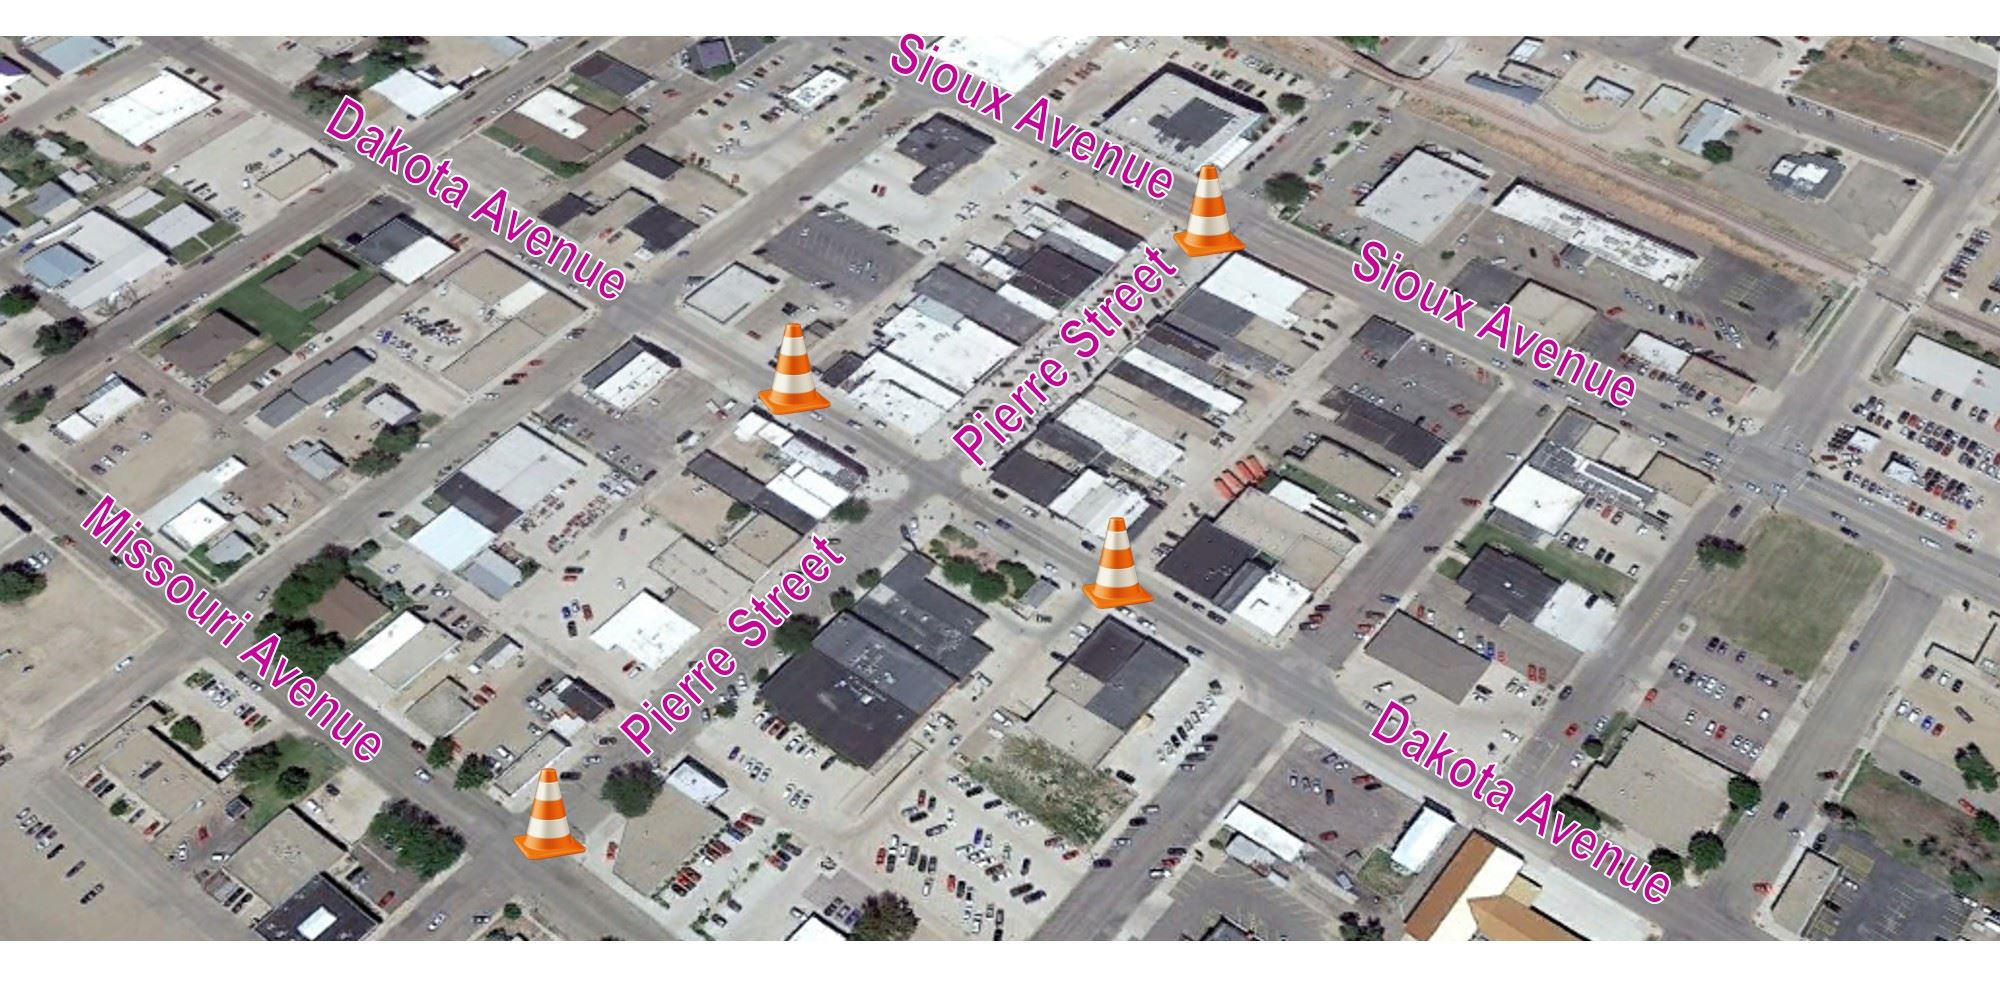 pierre street closure